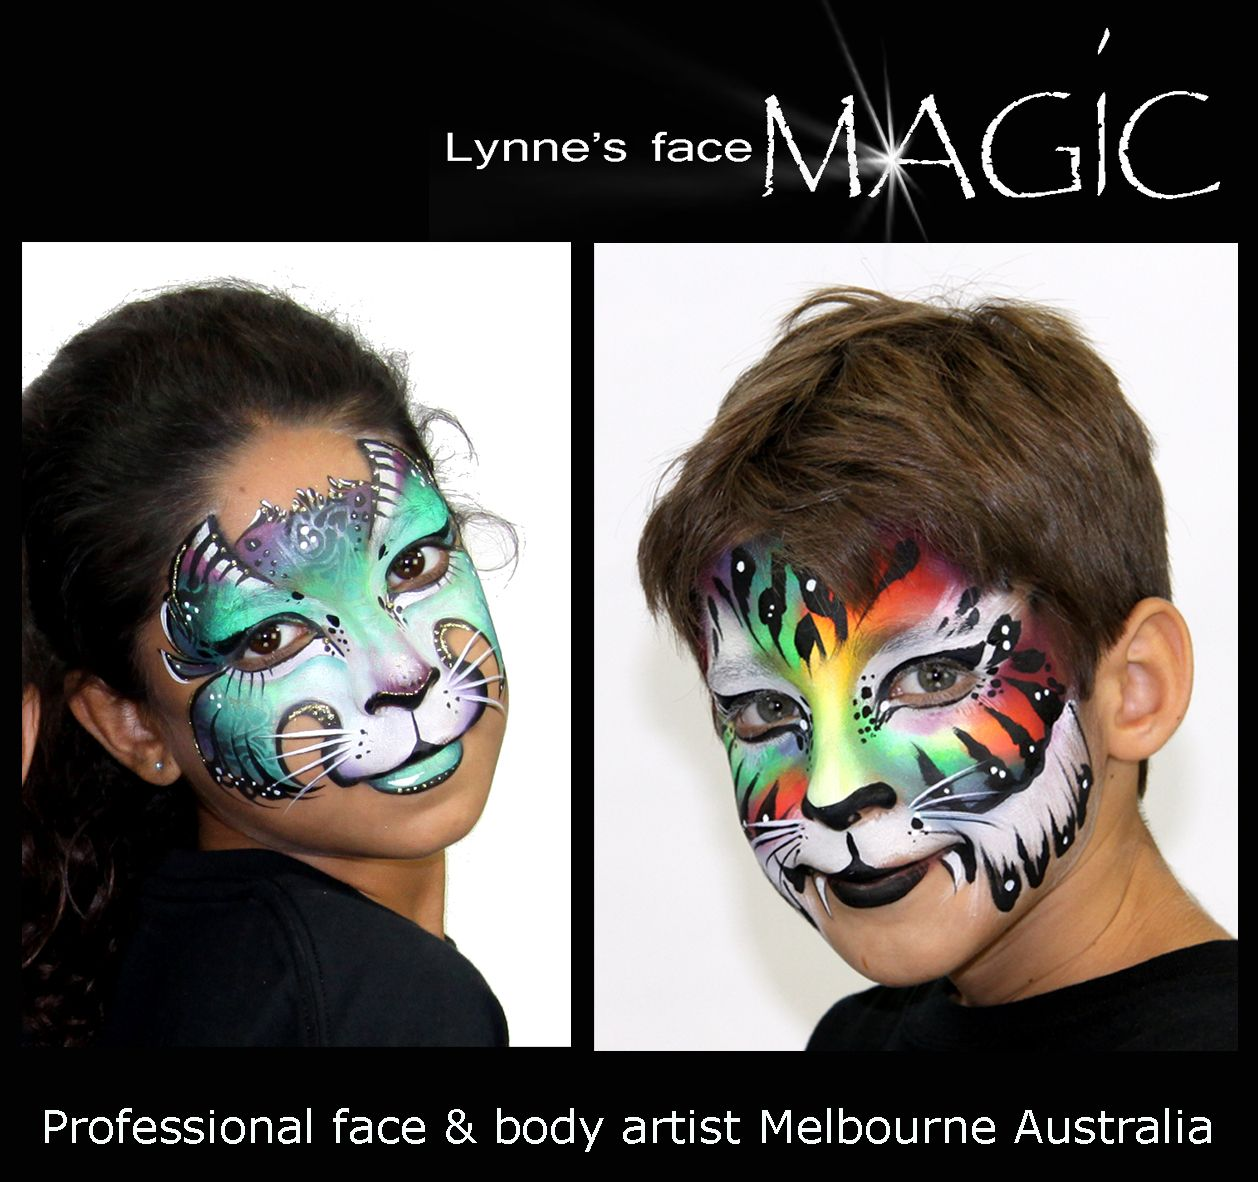 Pin by Kristin Stuckmyer on Music Face painting, Face